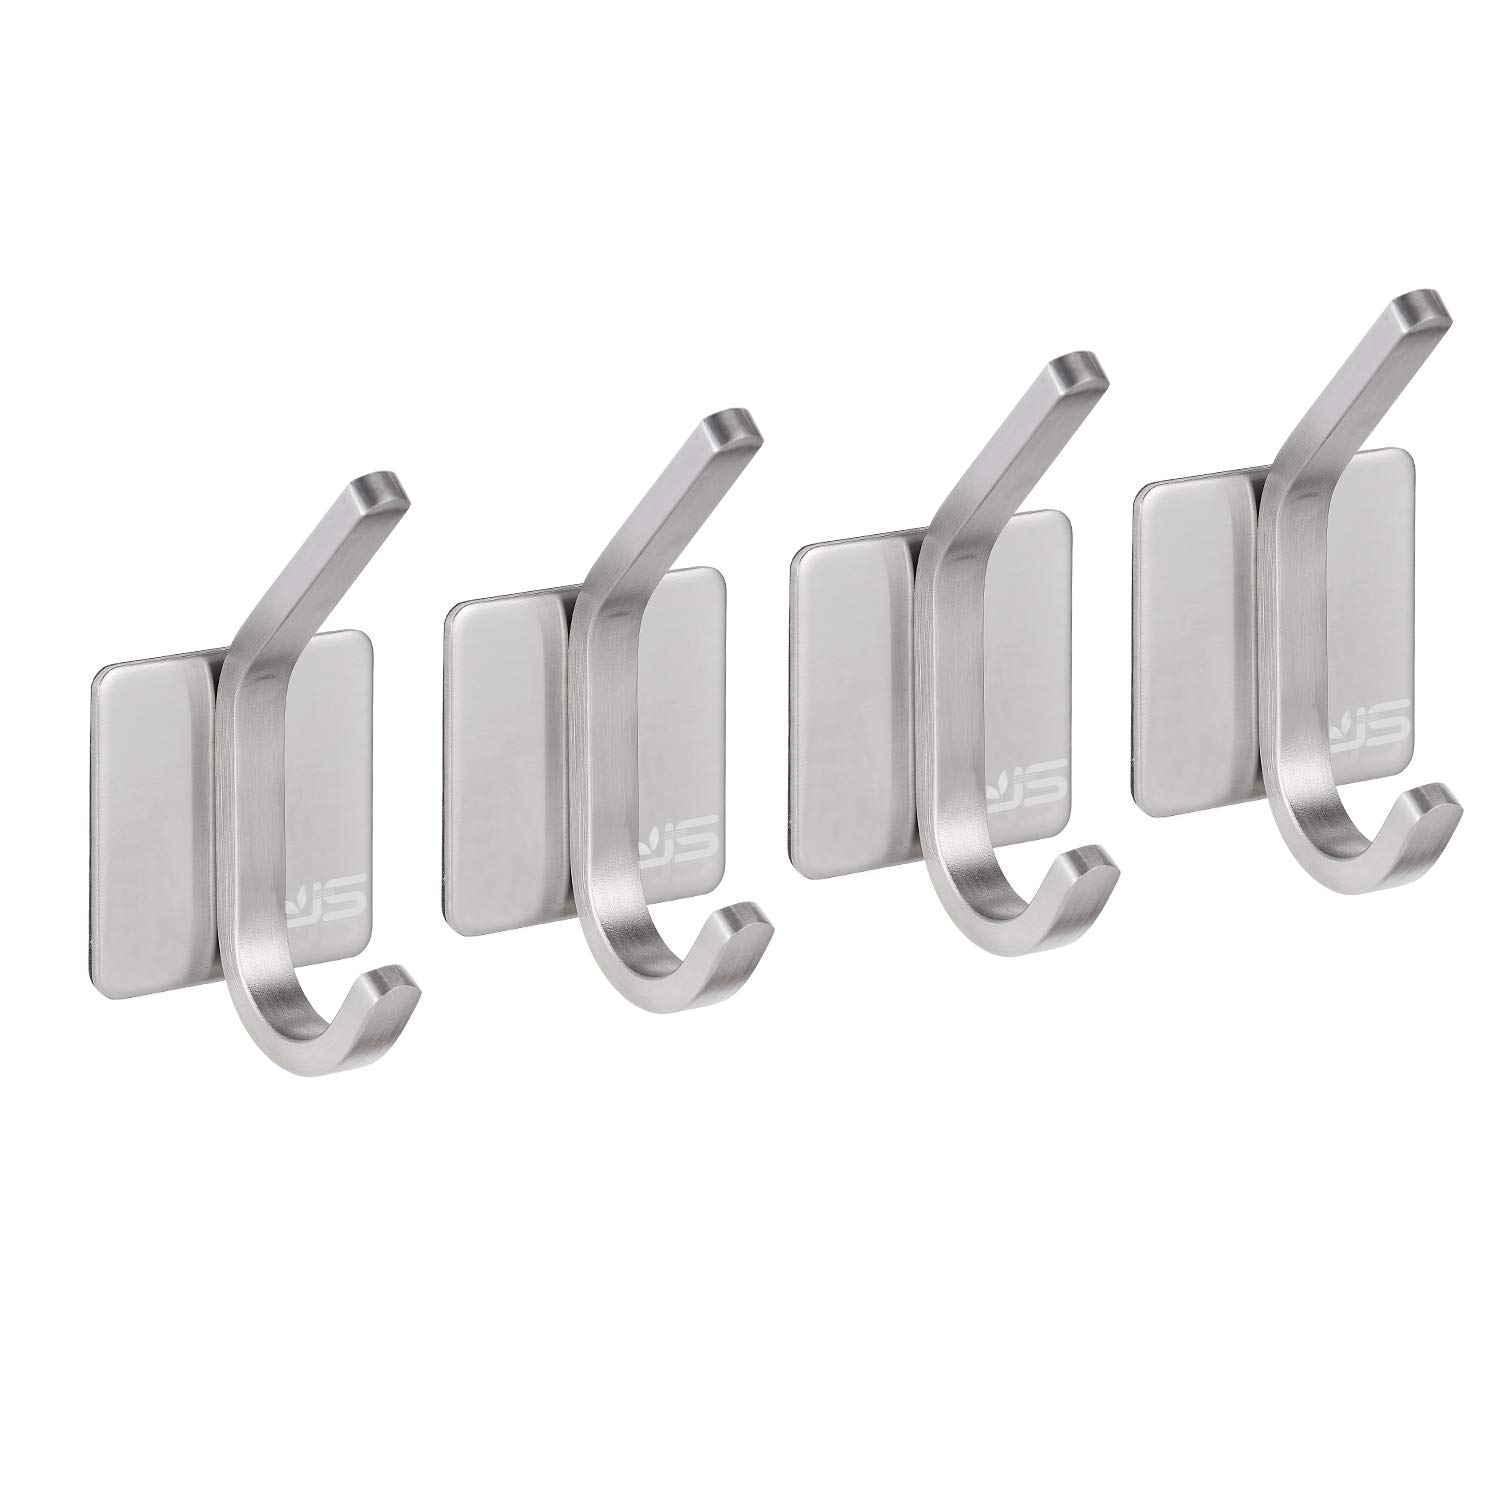 Factory Price Powder Coating Stainless Steel Kitchen: Towel Hooks : Online Shopping For Clothing, Shoes, Jewelry